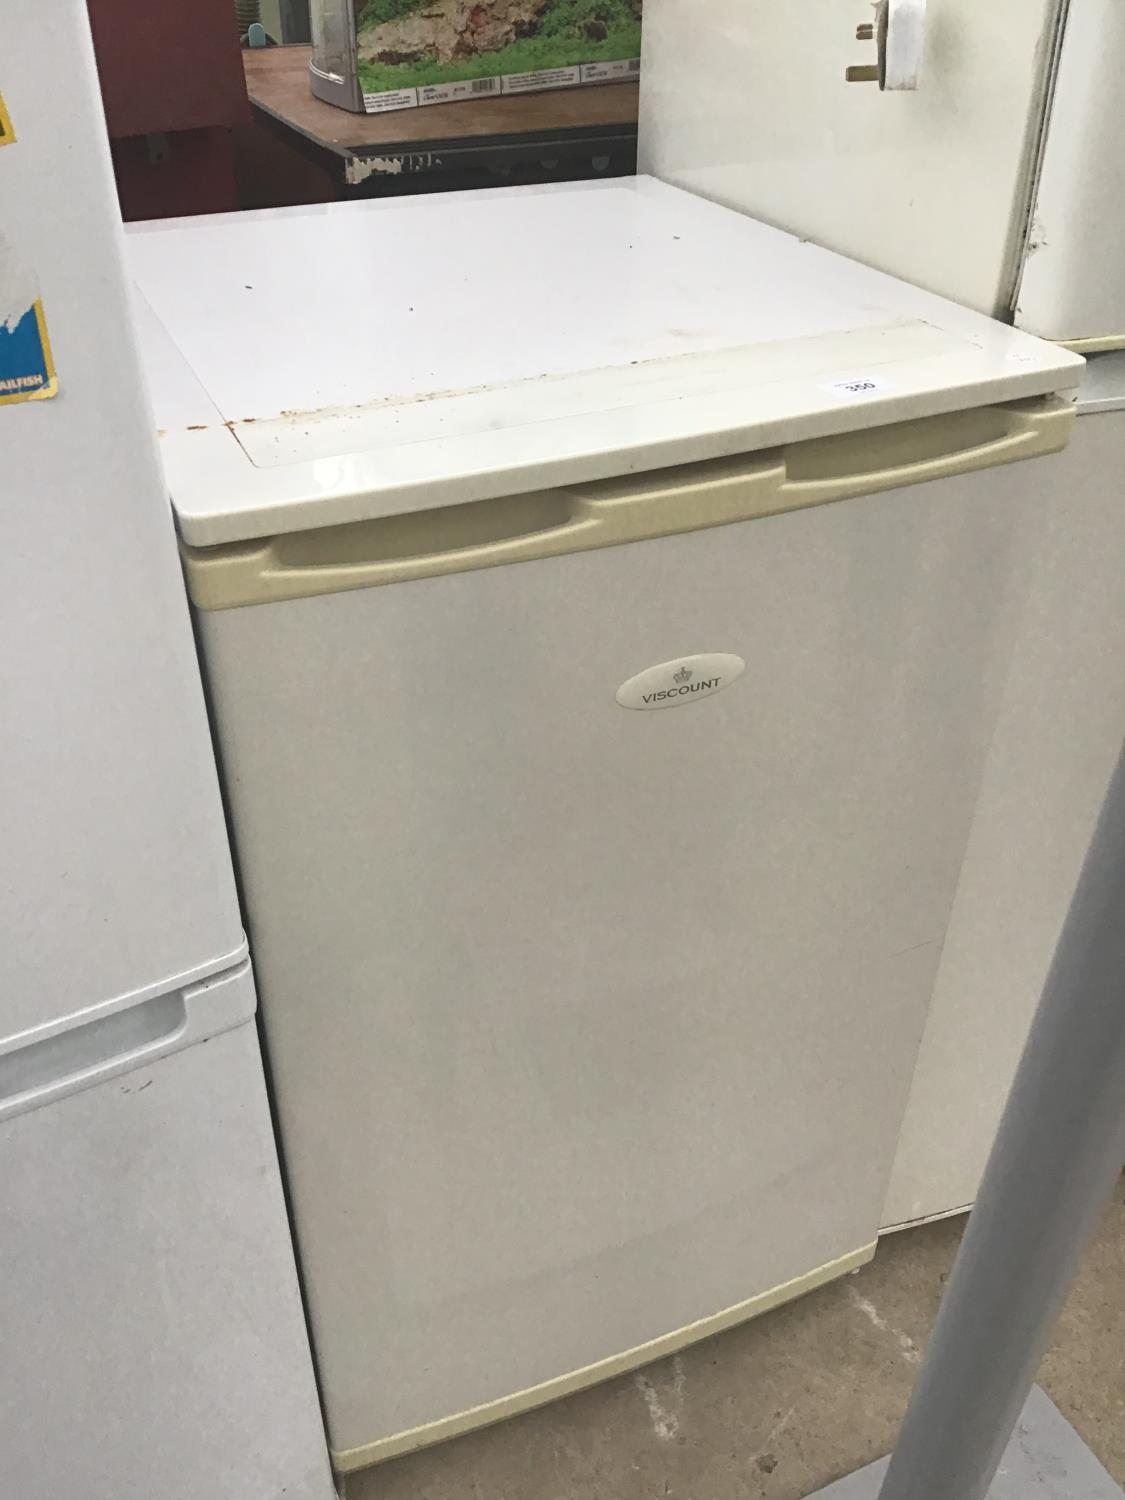 Lot 350 - A VISCOUNT UNDER COUNTER FREEZER IN CLEAN AND WORKING ORDER